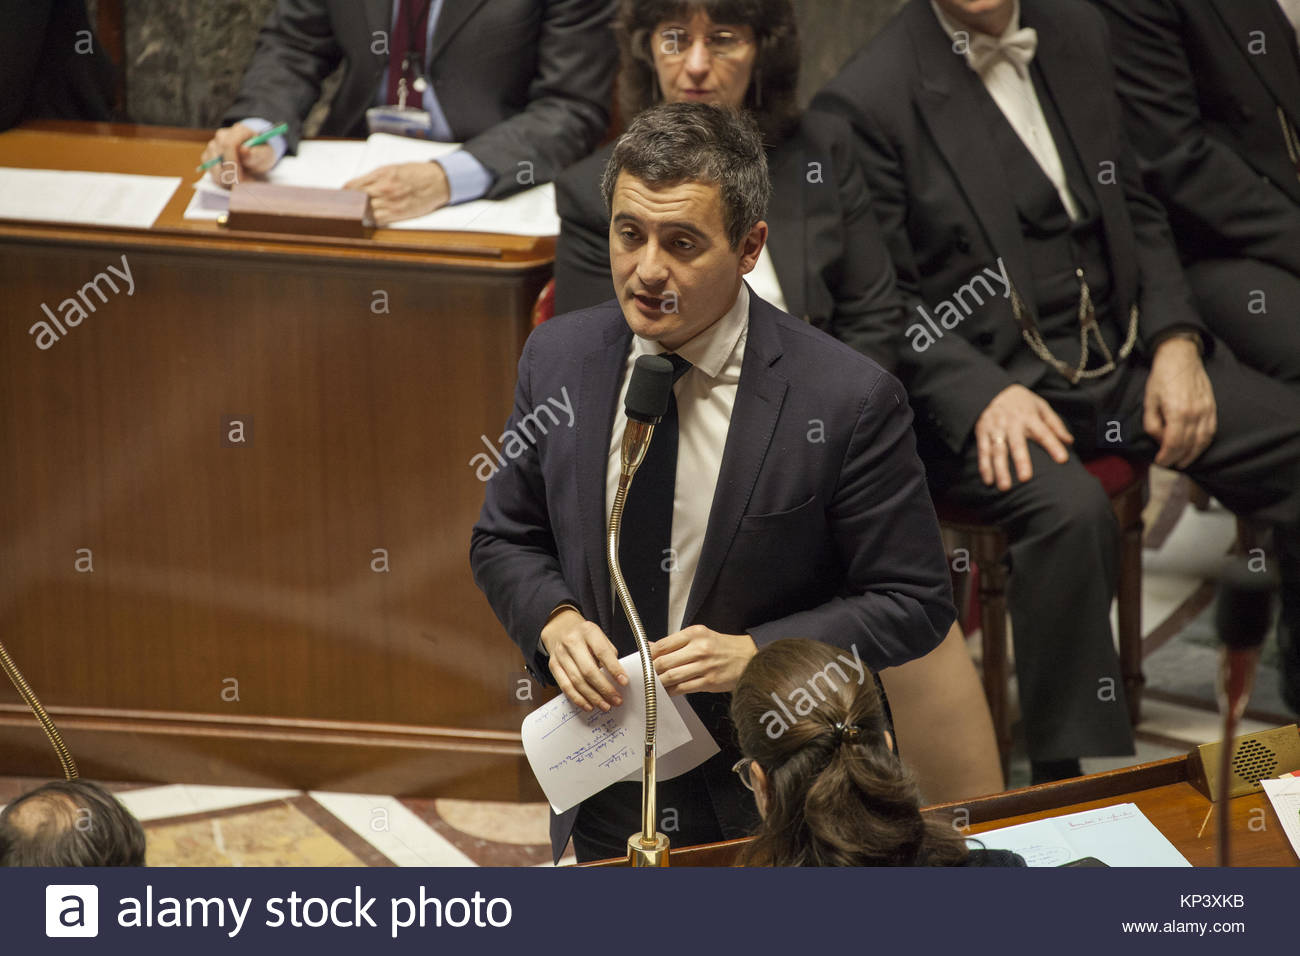 Paris, France. 12th Dec, 2017. French Minister of Public Action and Accounts Gérald Darmanin speaks during - Stock Image